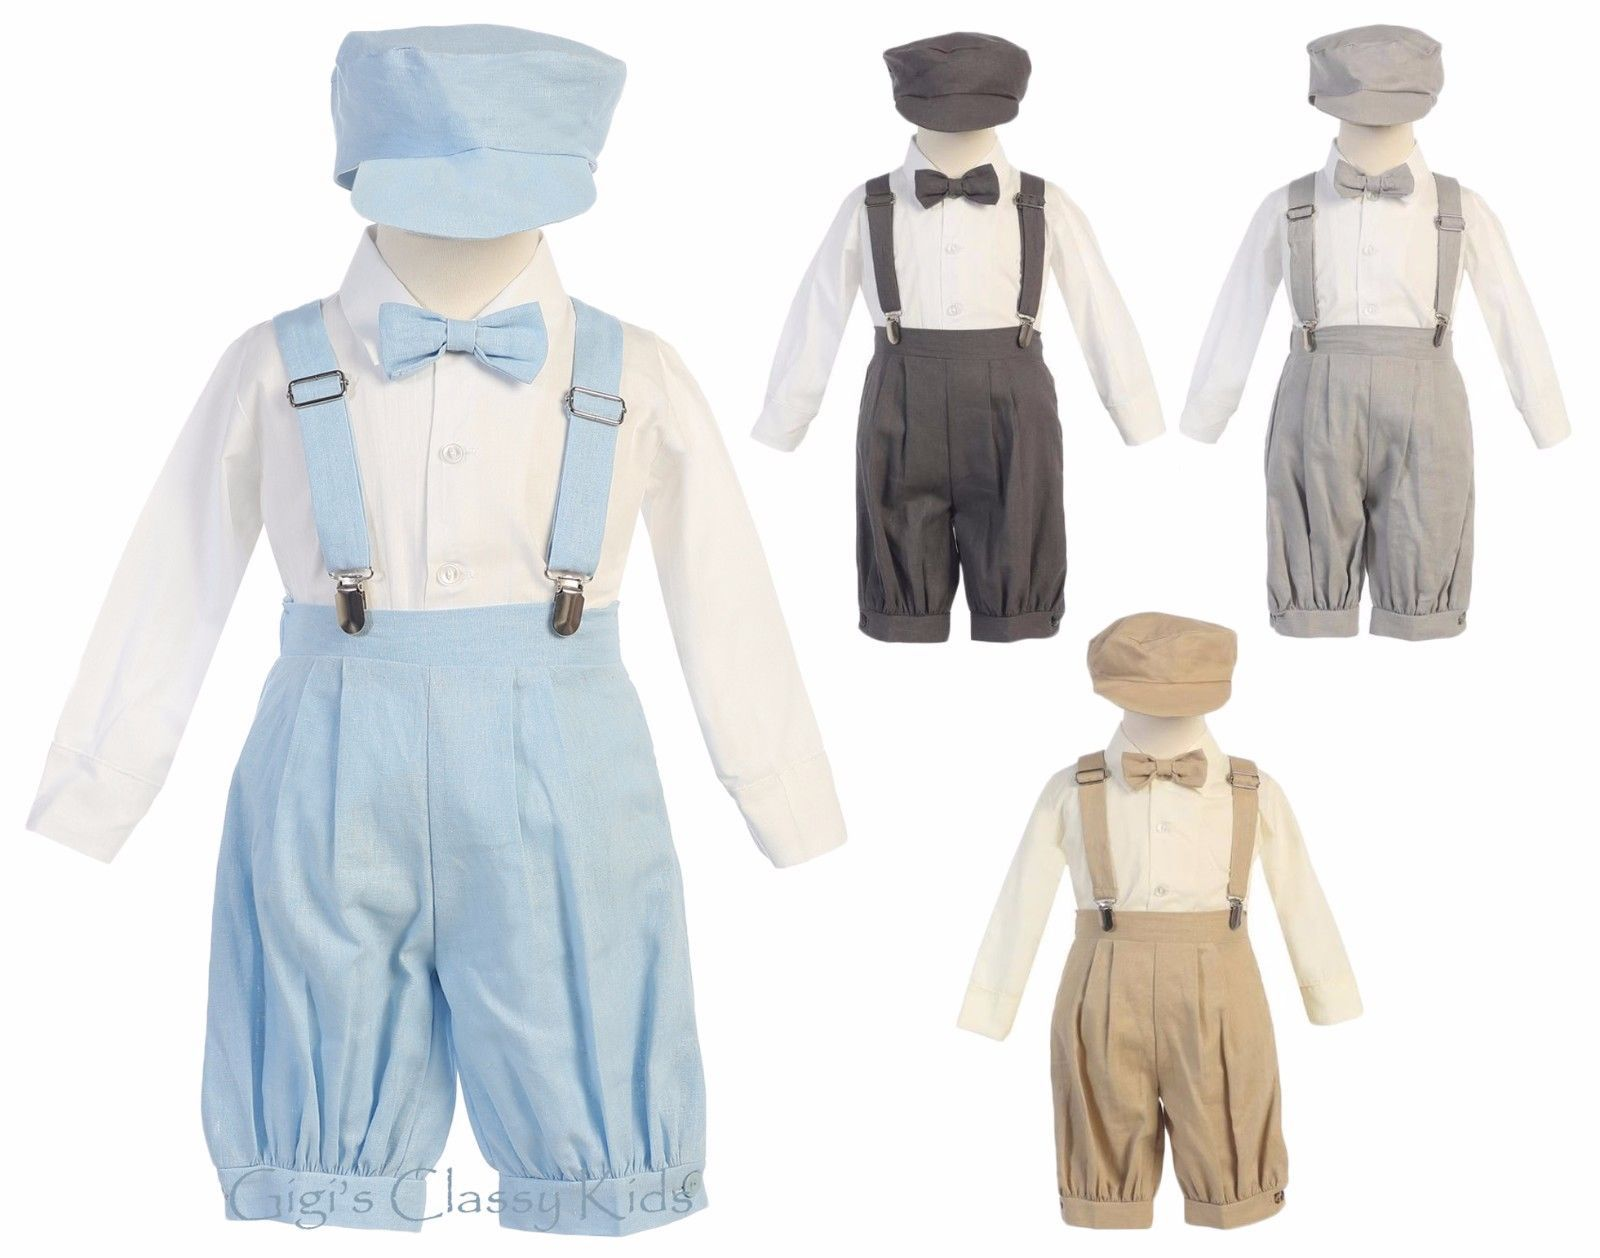 Toddler boy dress clothes for wedding  Outfits and Sets  New Baby Toddler Boys Knickers Vintage Suit